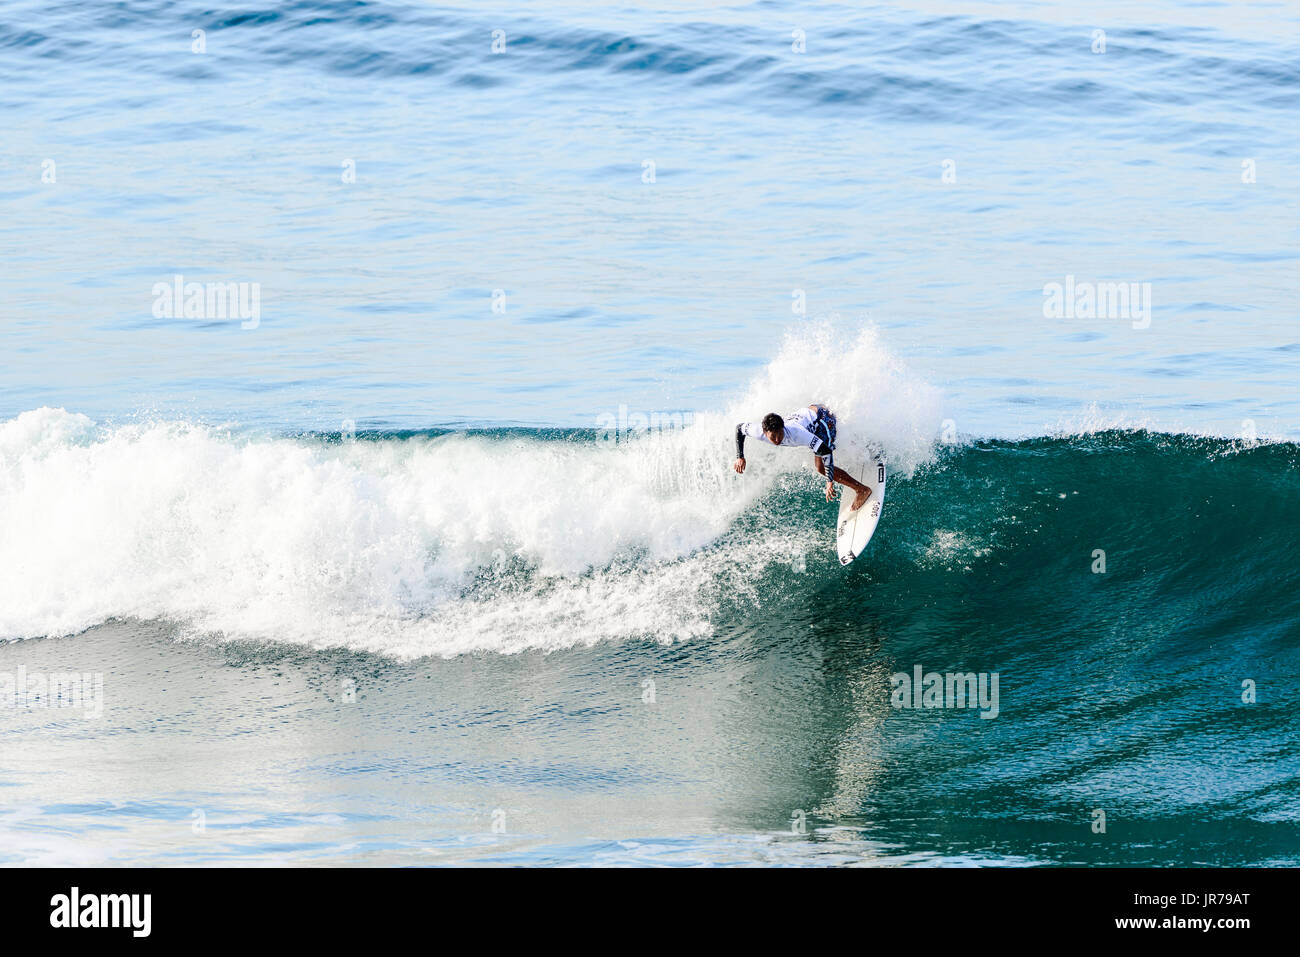 Huntington Beach, USA. 03 August, 2017. Josh Moniz (USA-Hawaii) wins his round 2 heat with a blend of big, progressive airs and classic turns at the 2017 VANS US Open of Surfing. Credit: Benjamin Ginsberg/Alamy Live News. - Stock Image